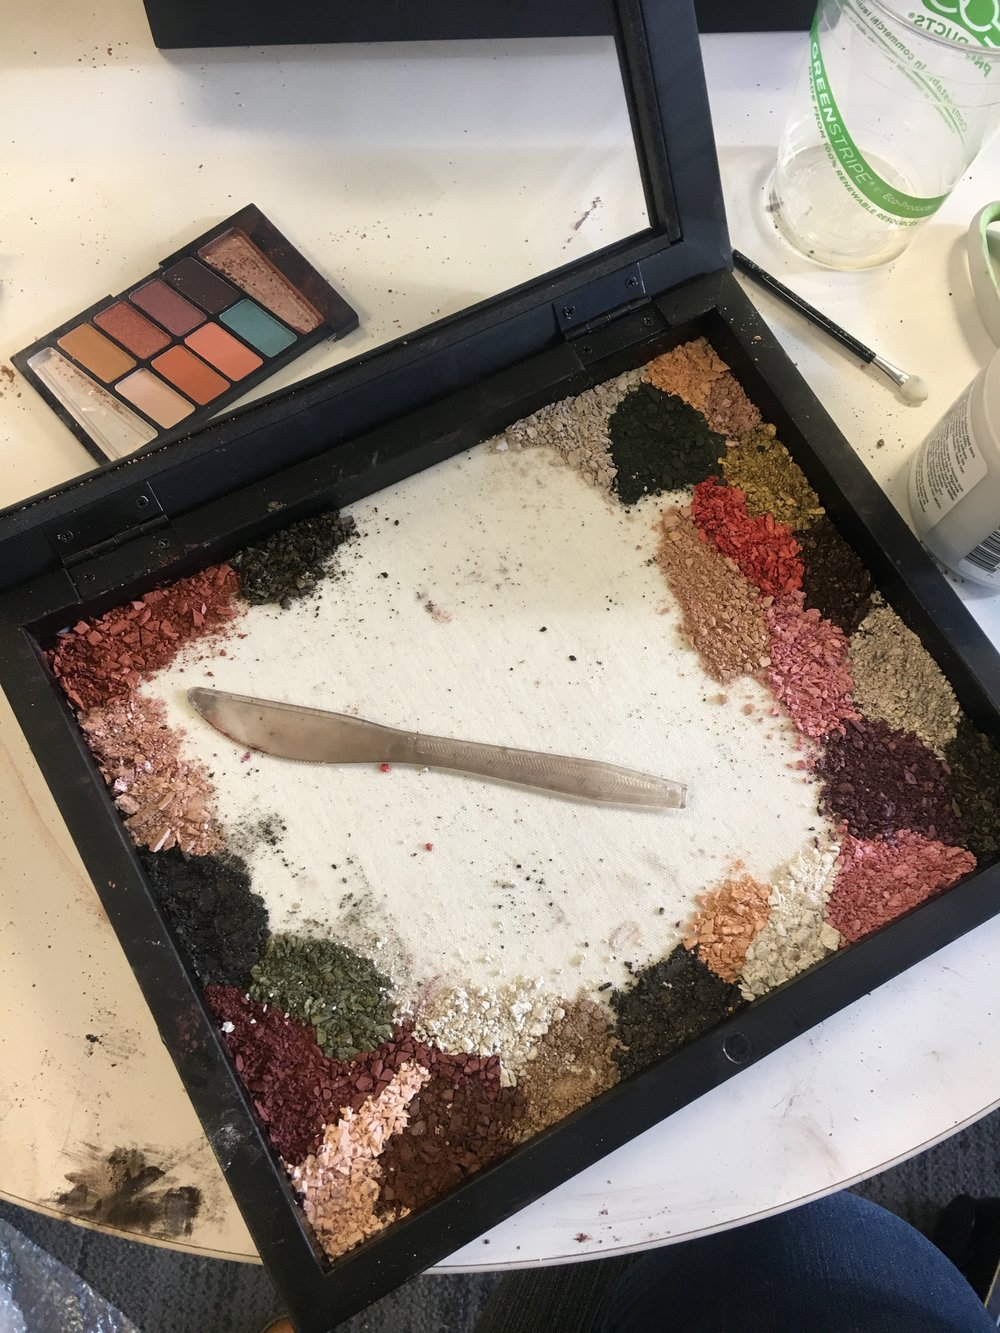 - This project took 67 eyeshadow palettes to complete. And meant hours of crushing and crumbling powdered makeup.